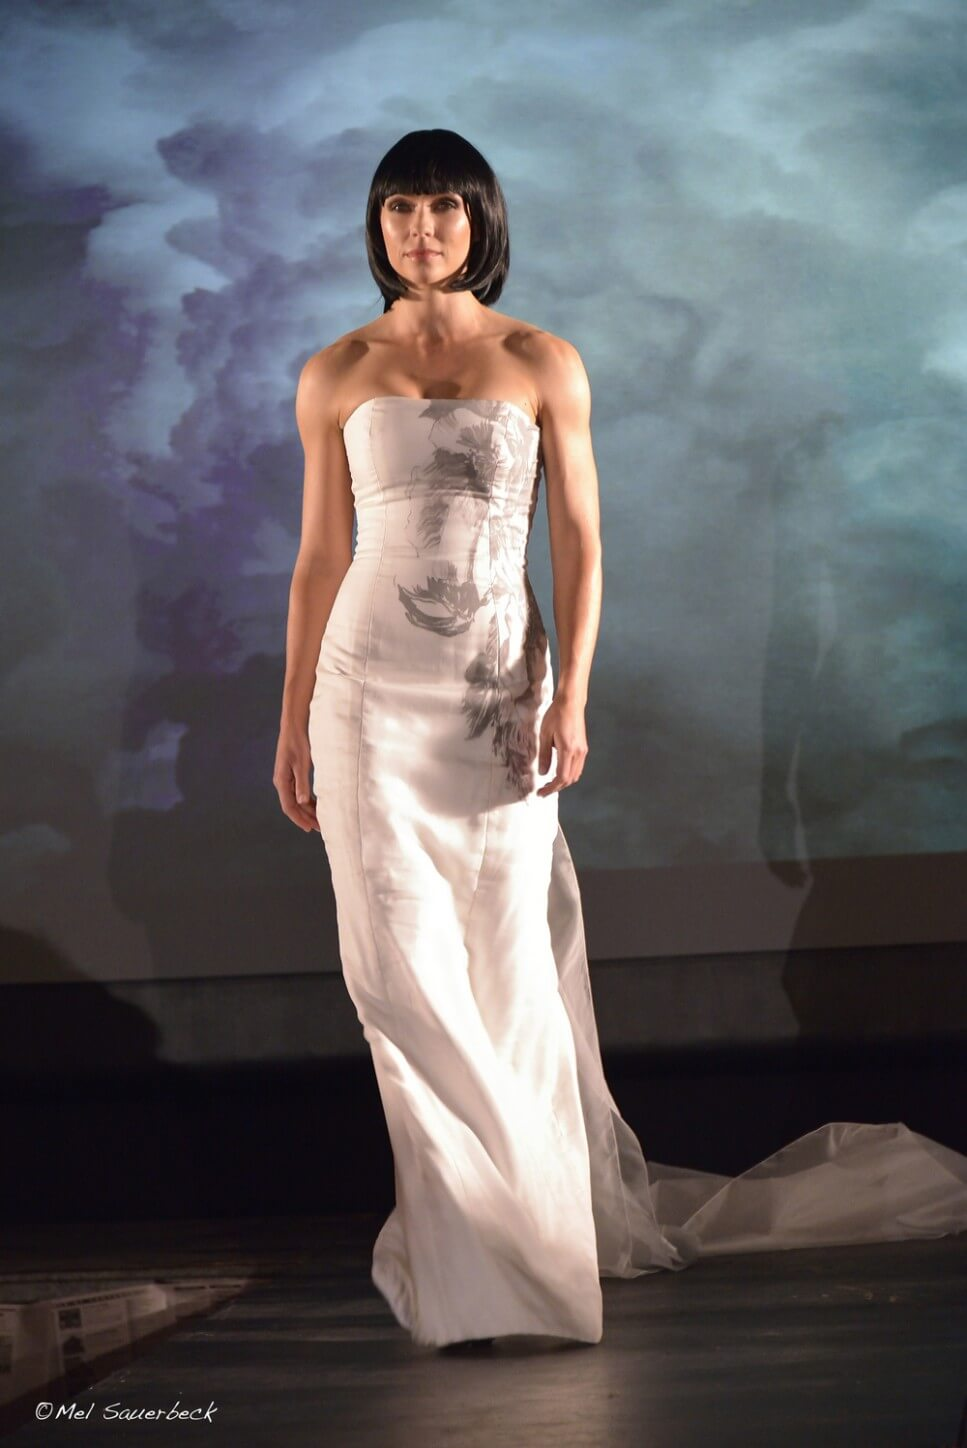 Young woman, Fashion show runway